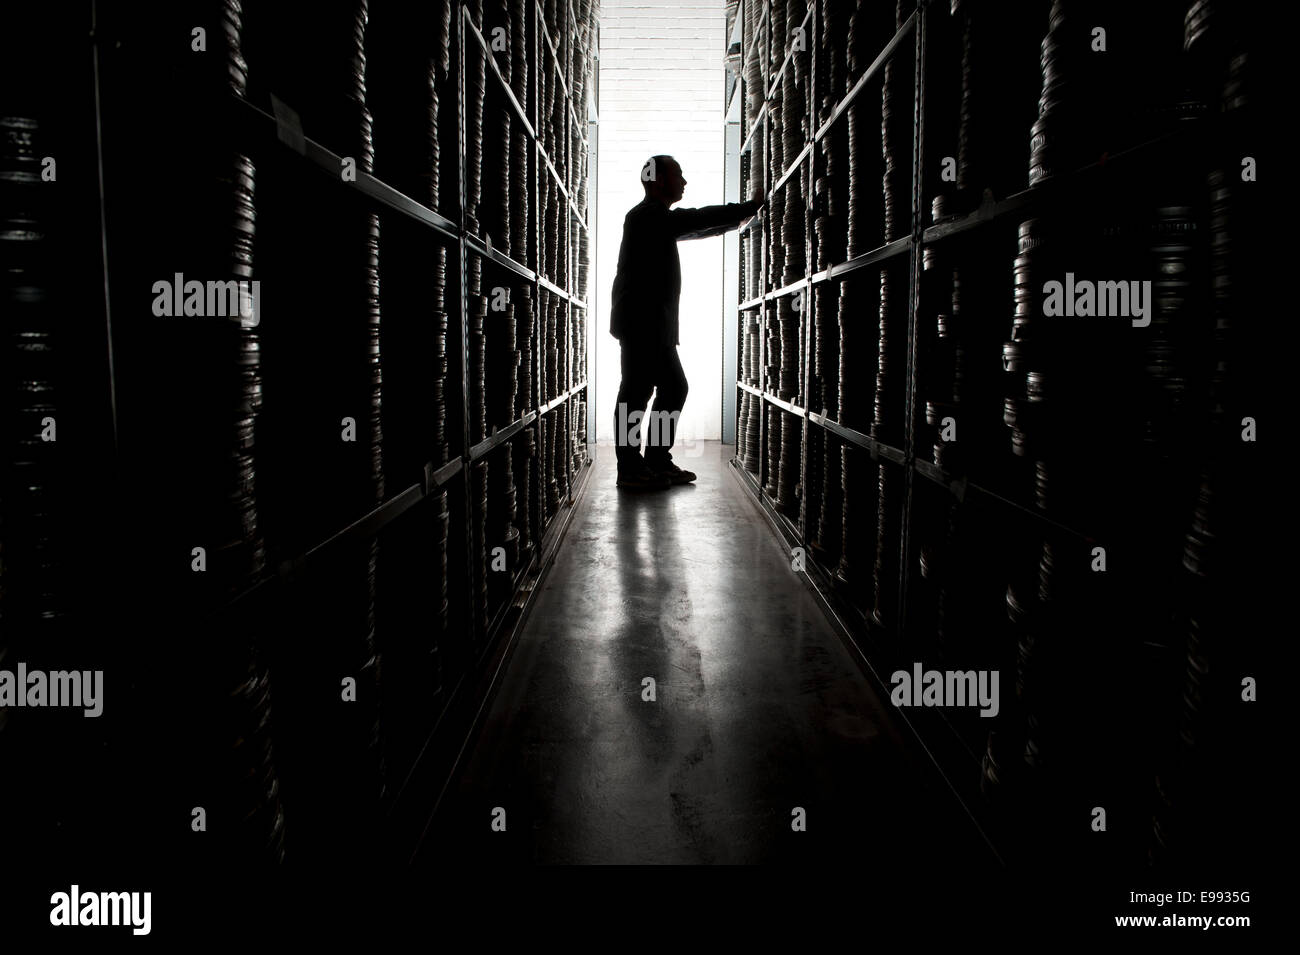 portrait of female member of staff at the BFI archive with storage shelves full of film reels / cartons housing - Stock Image